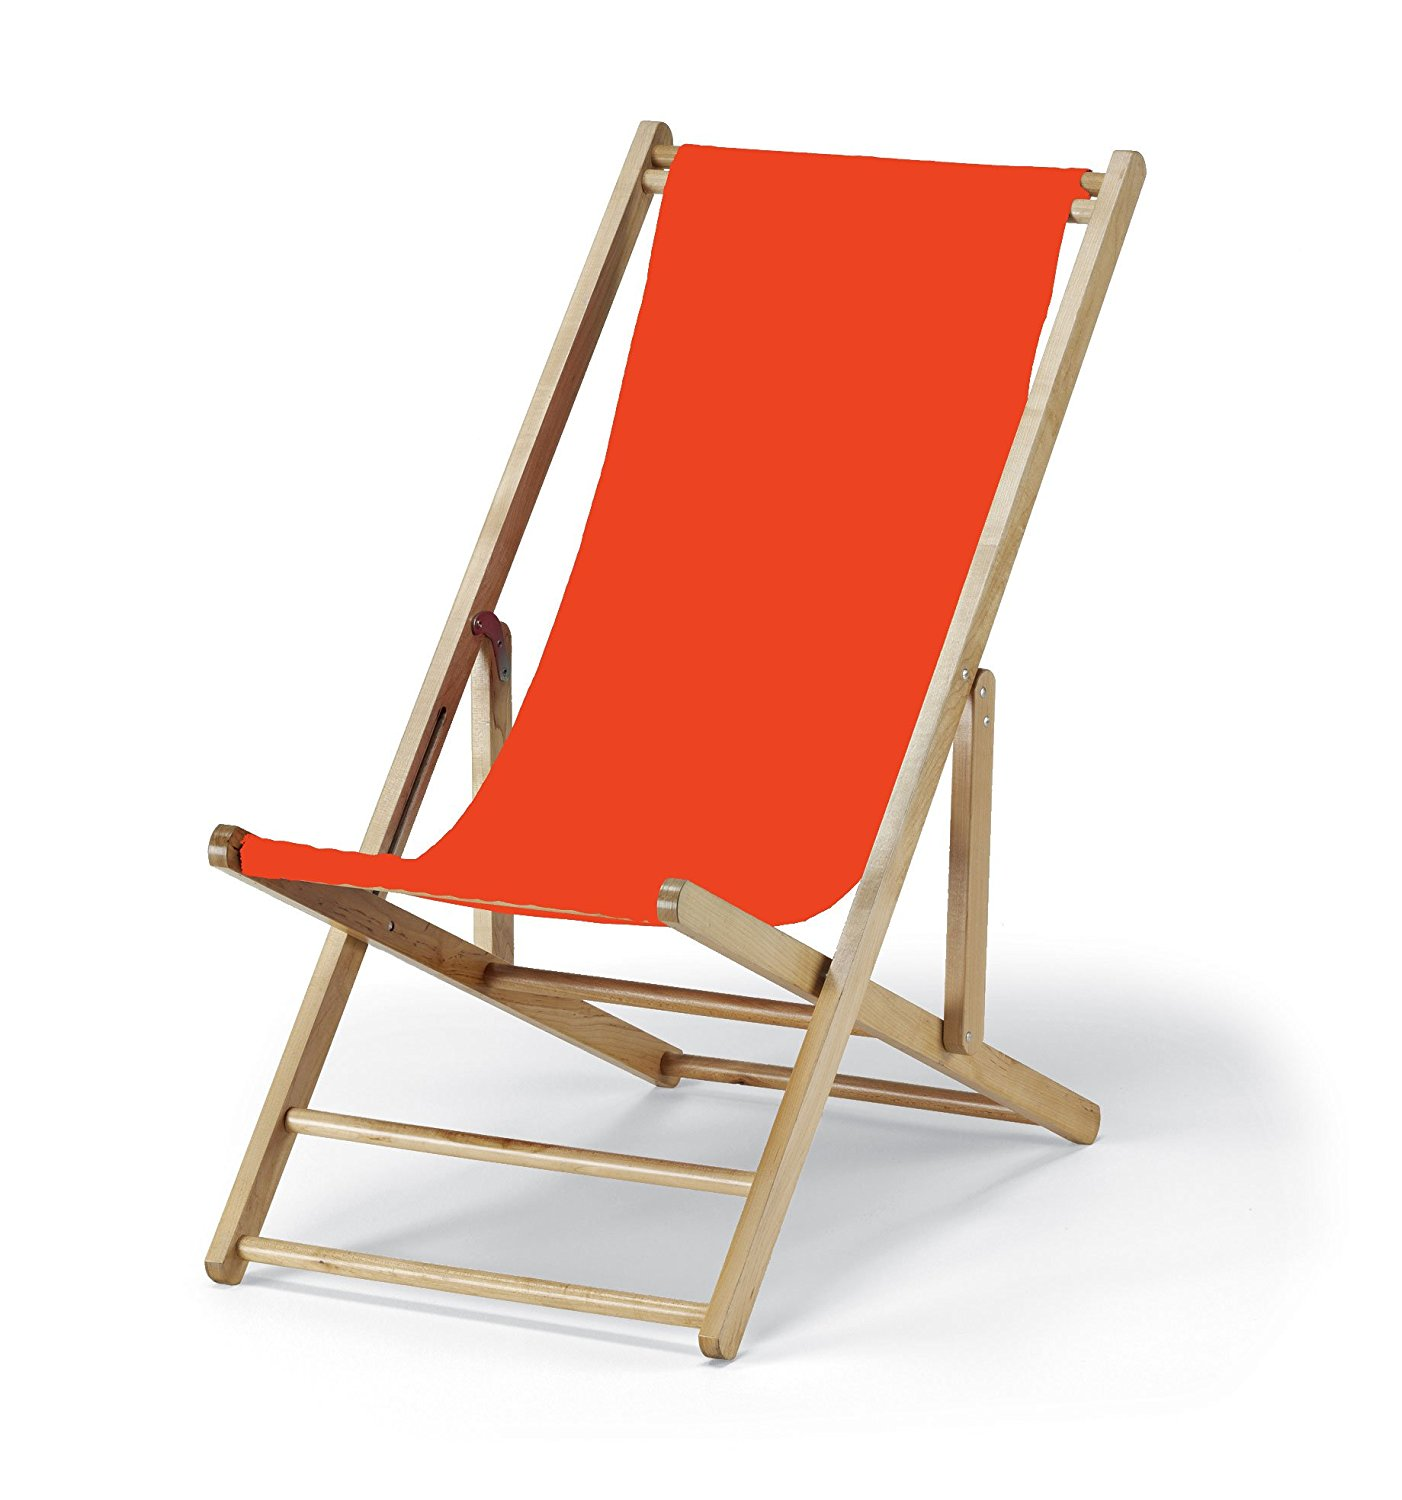 Tremendous Cheap Sling Beach Chair Find Sling Beach Chair Deals On Gmtry Best Dining Table And Chair Ideas Images Gmtryco